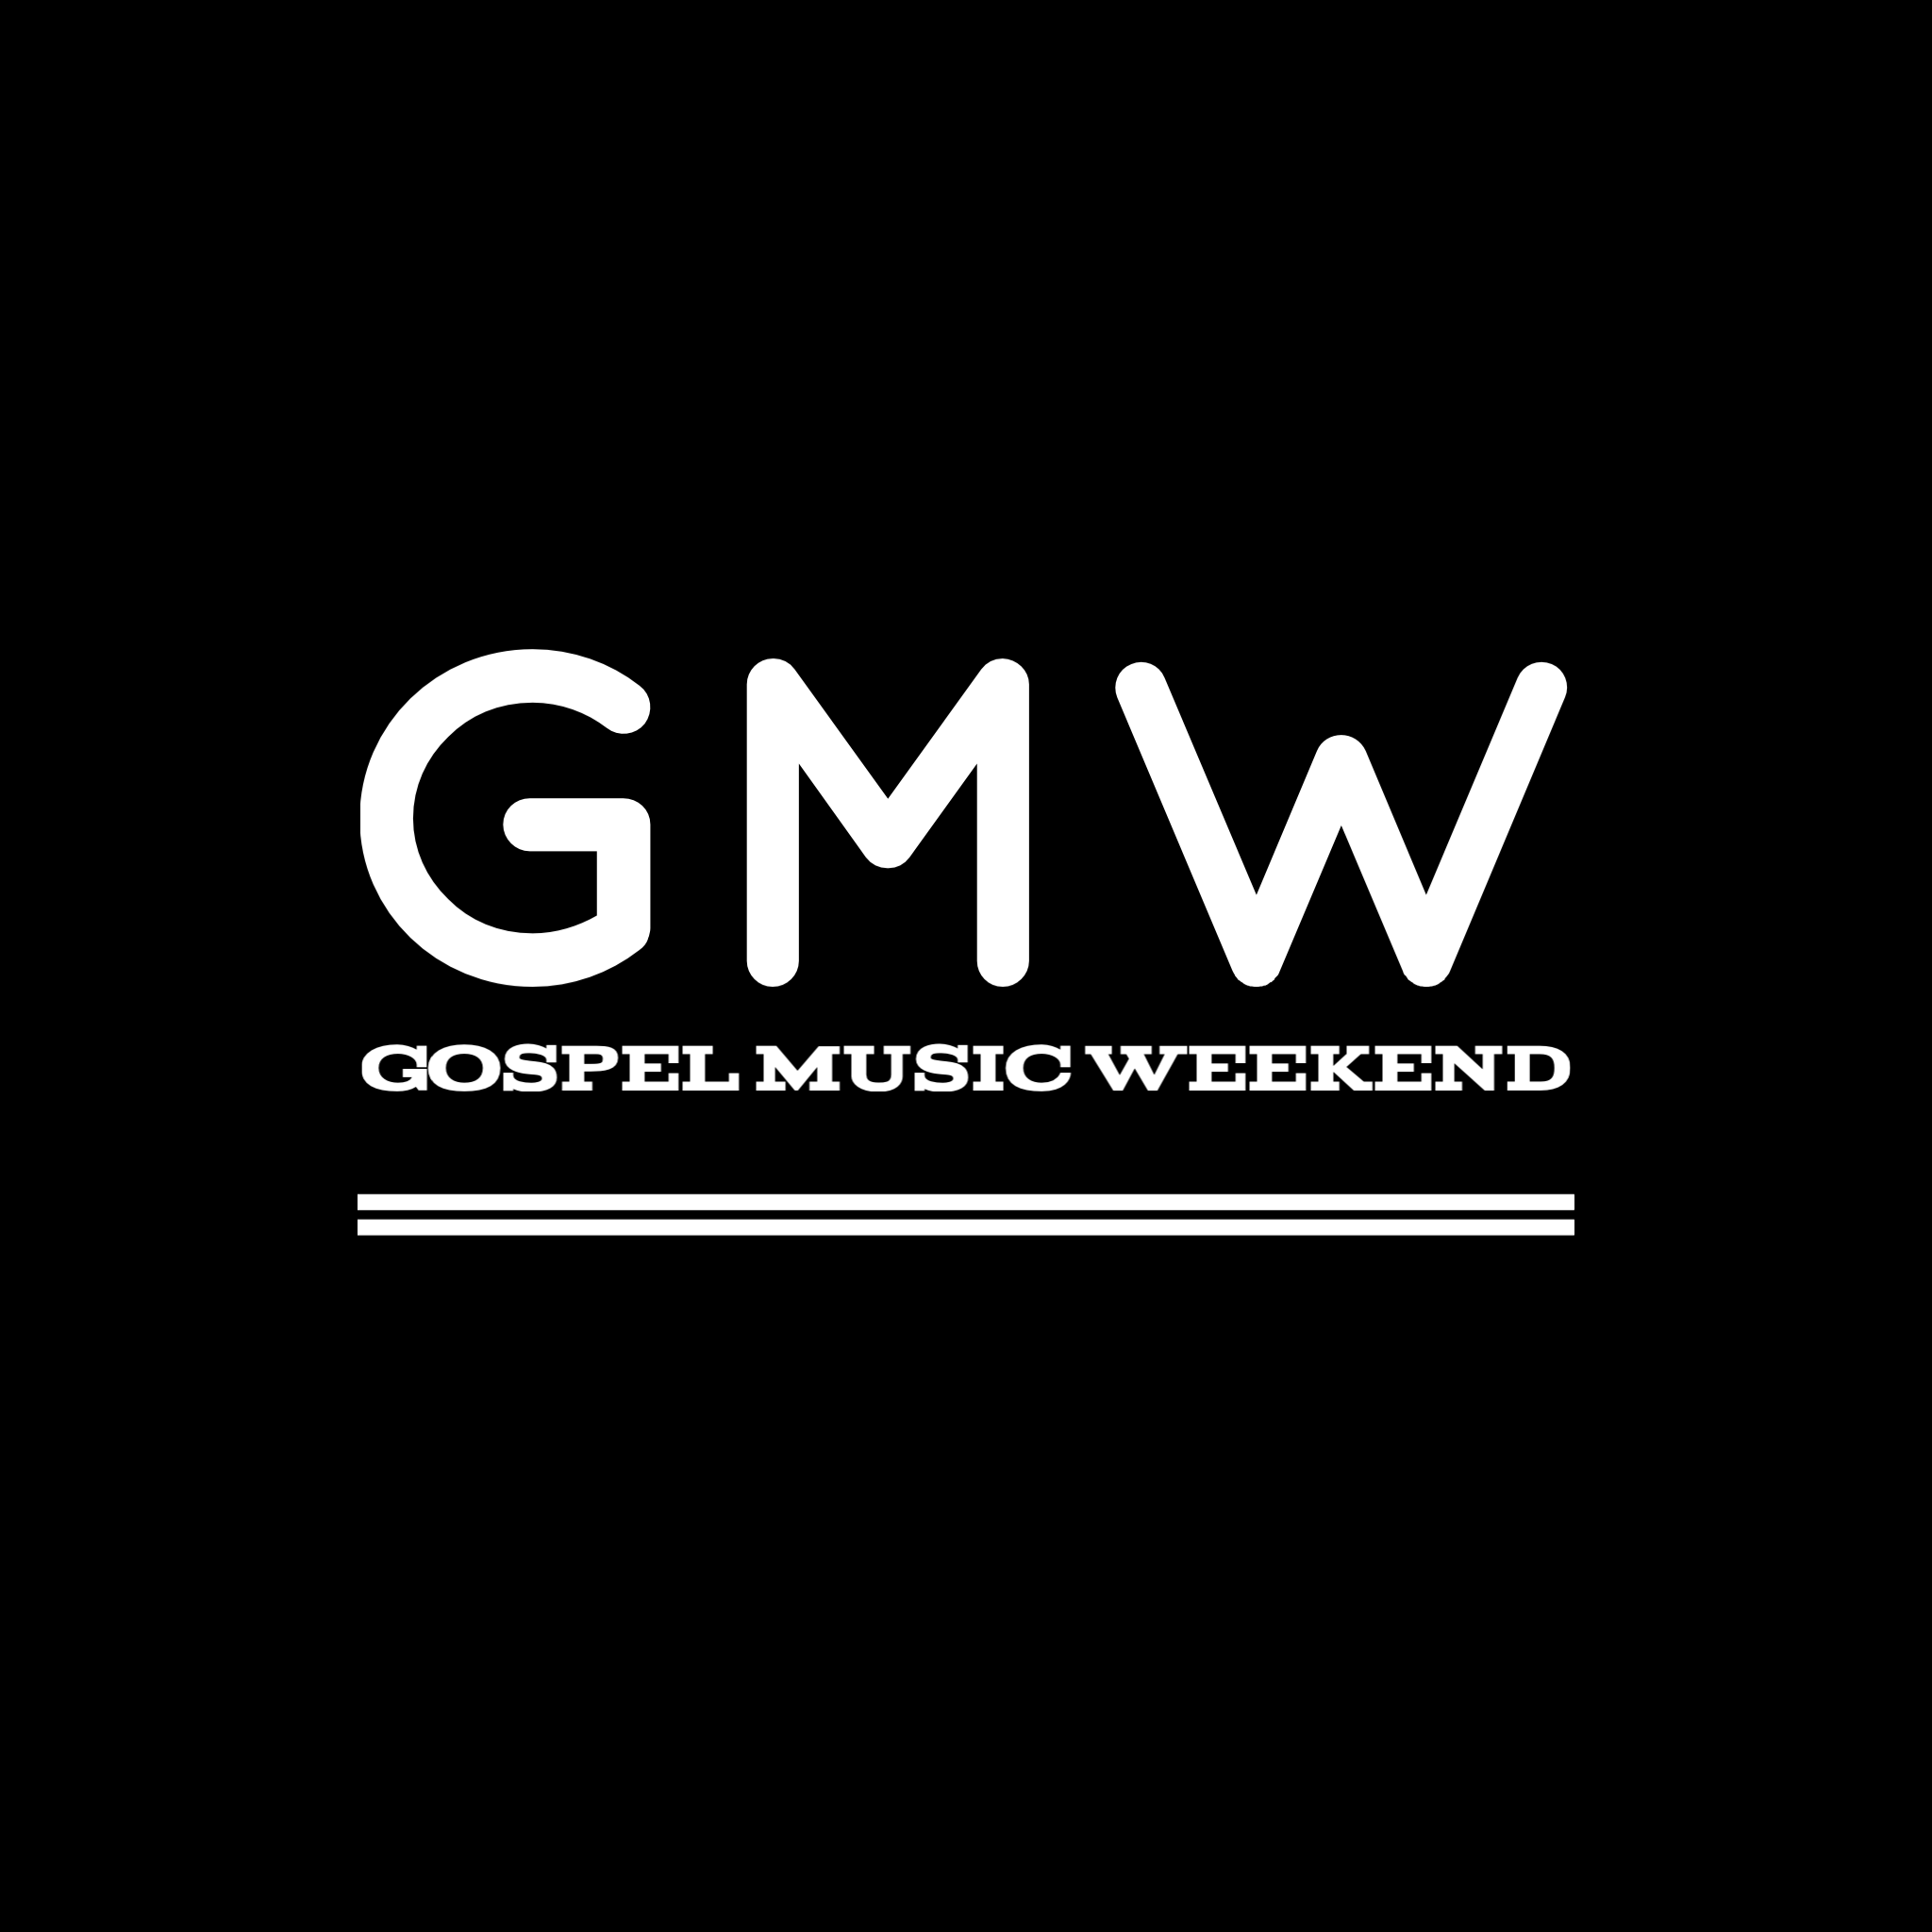 Gospel Music Weekend Comes to Michigan